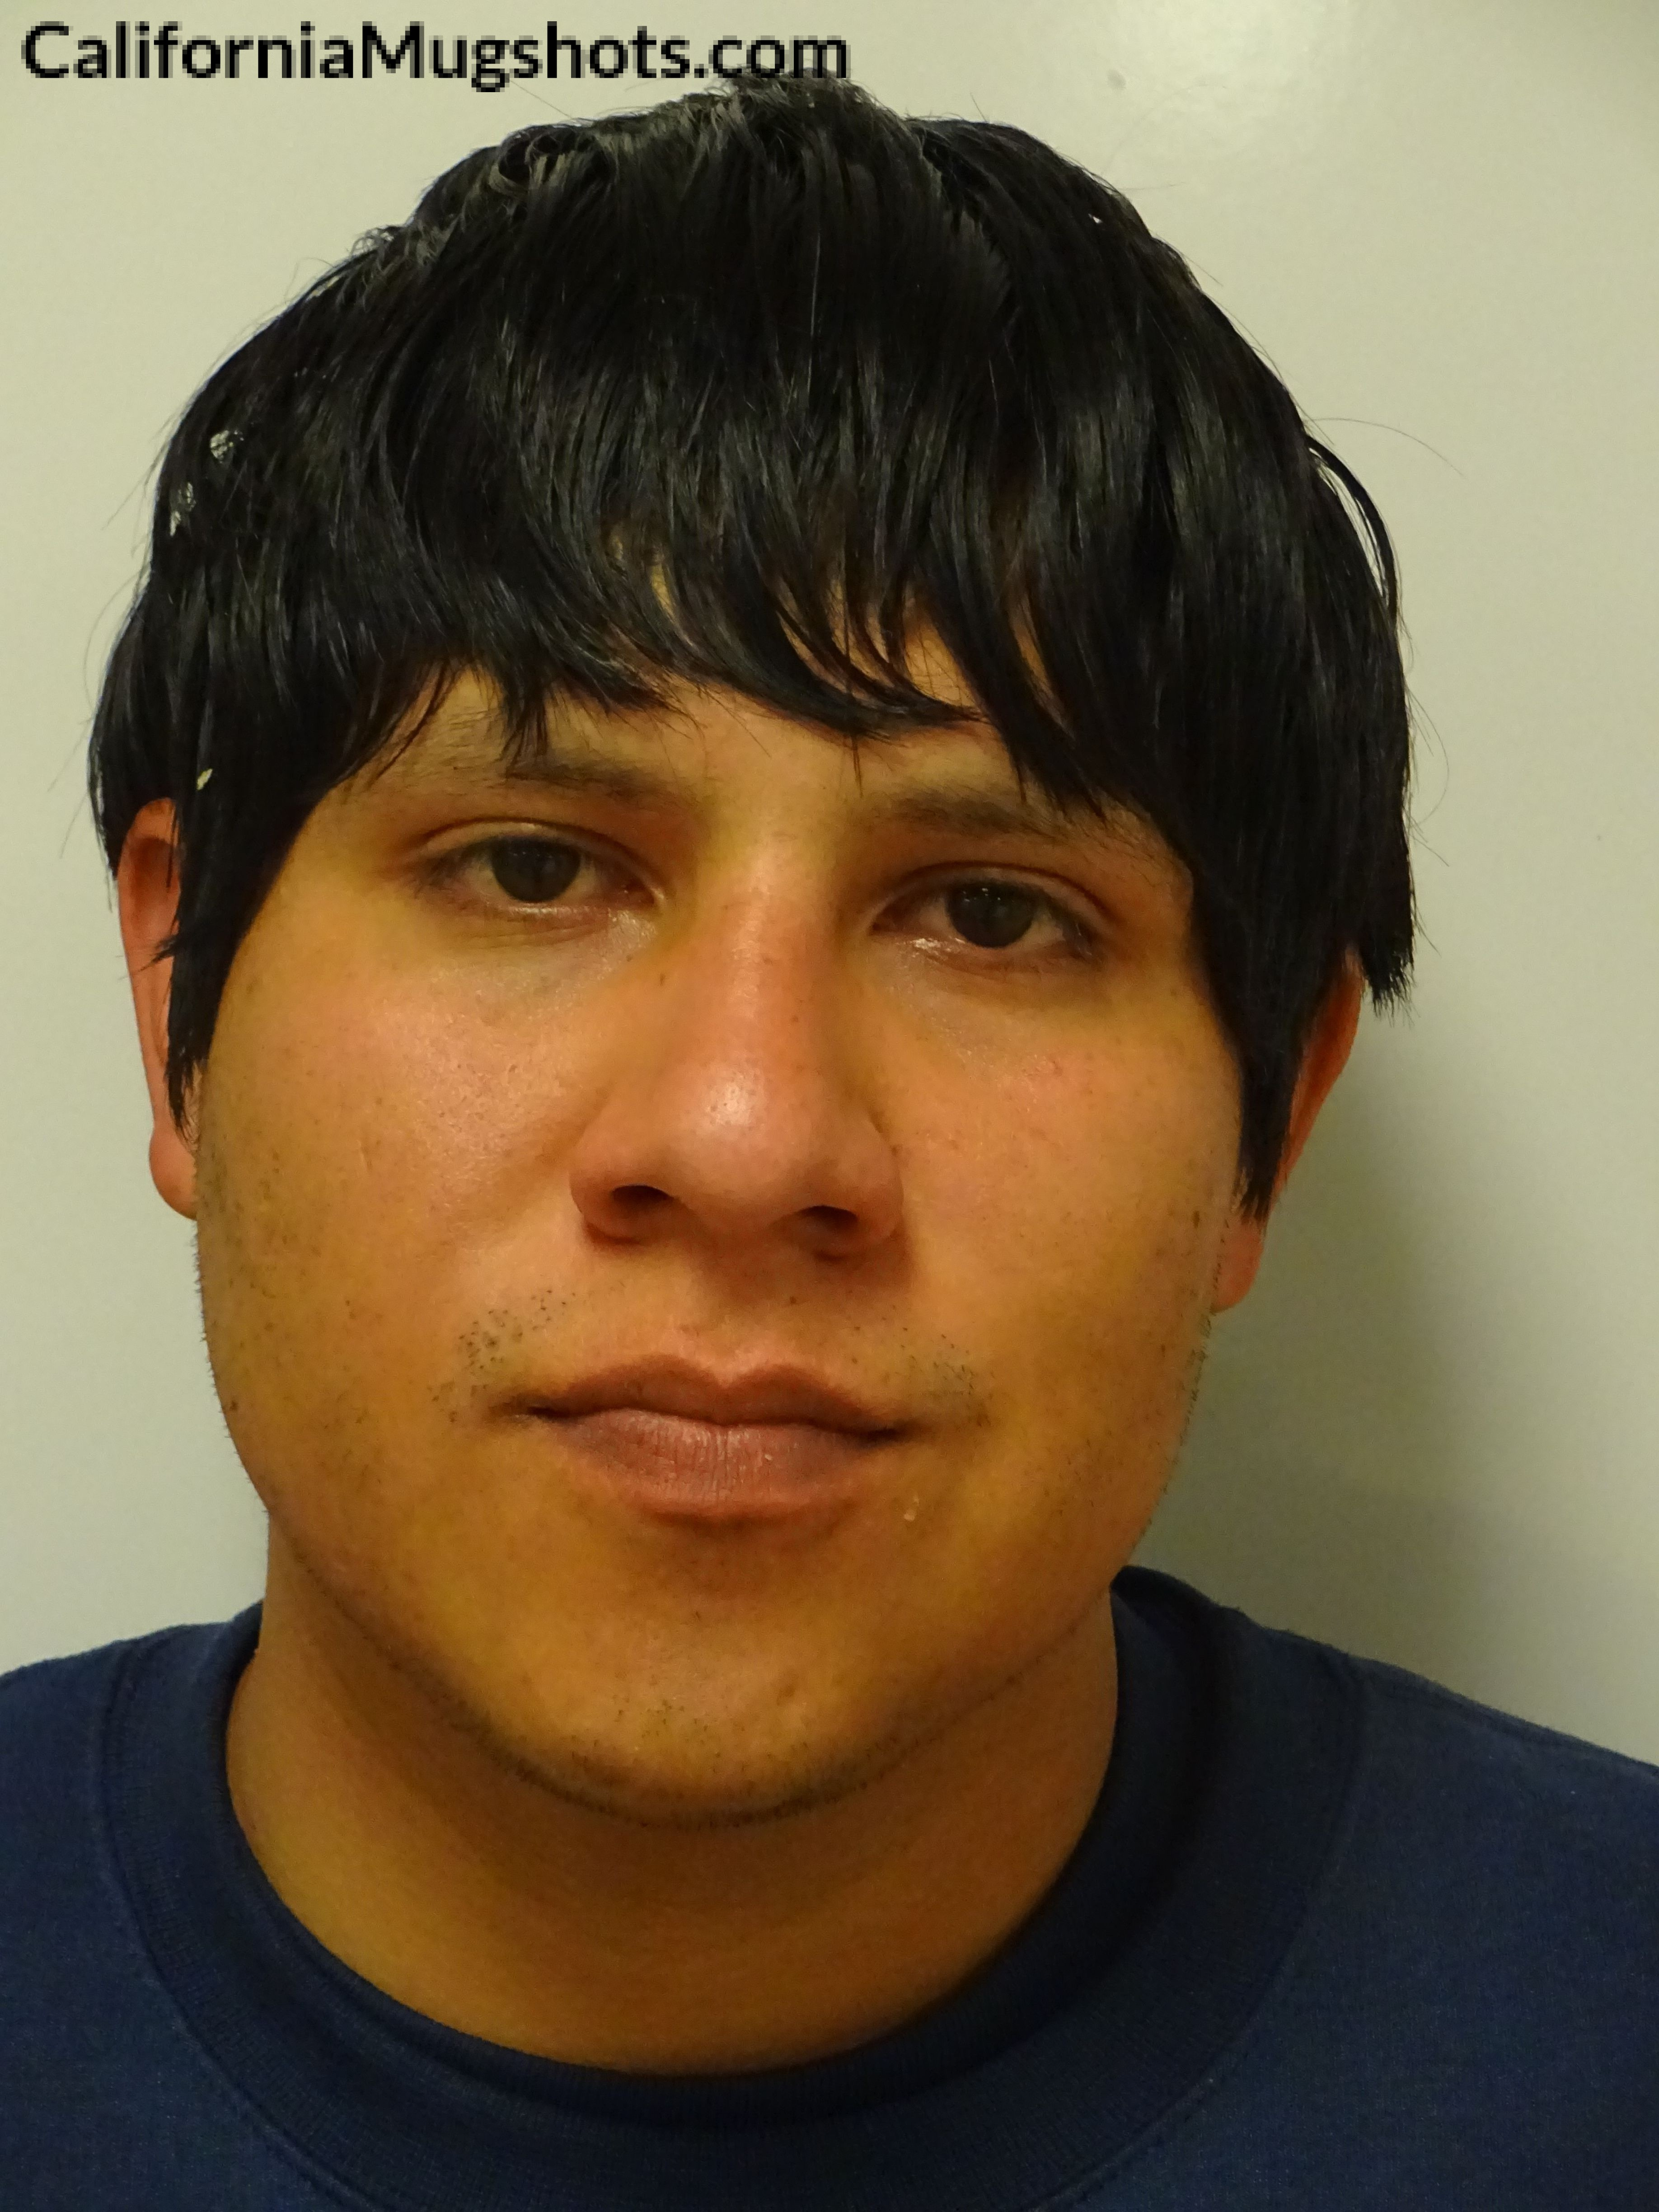 Andrew Nicholas Azbill arrested in Lake County,CA